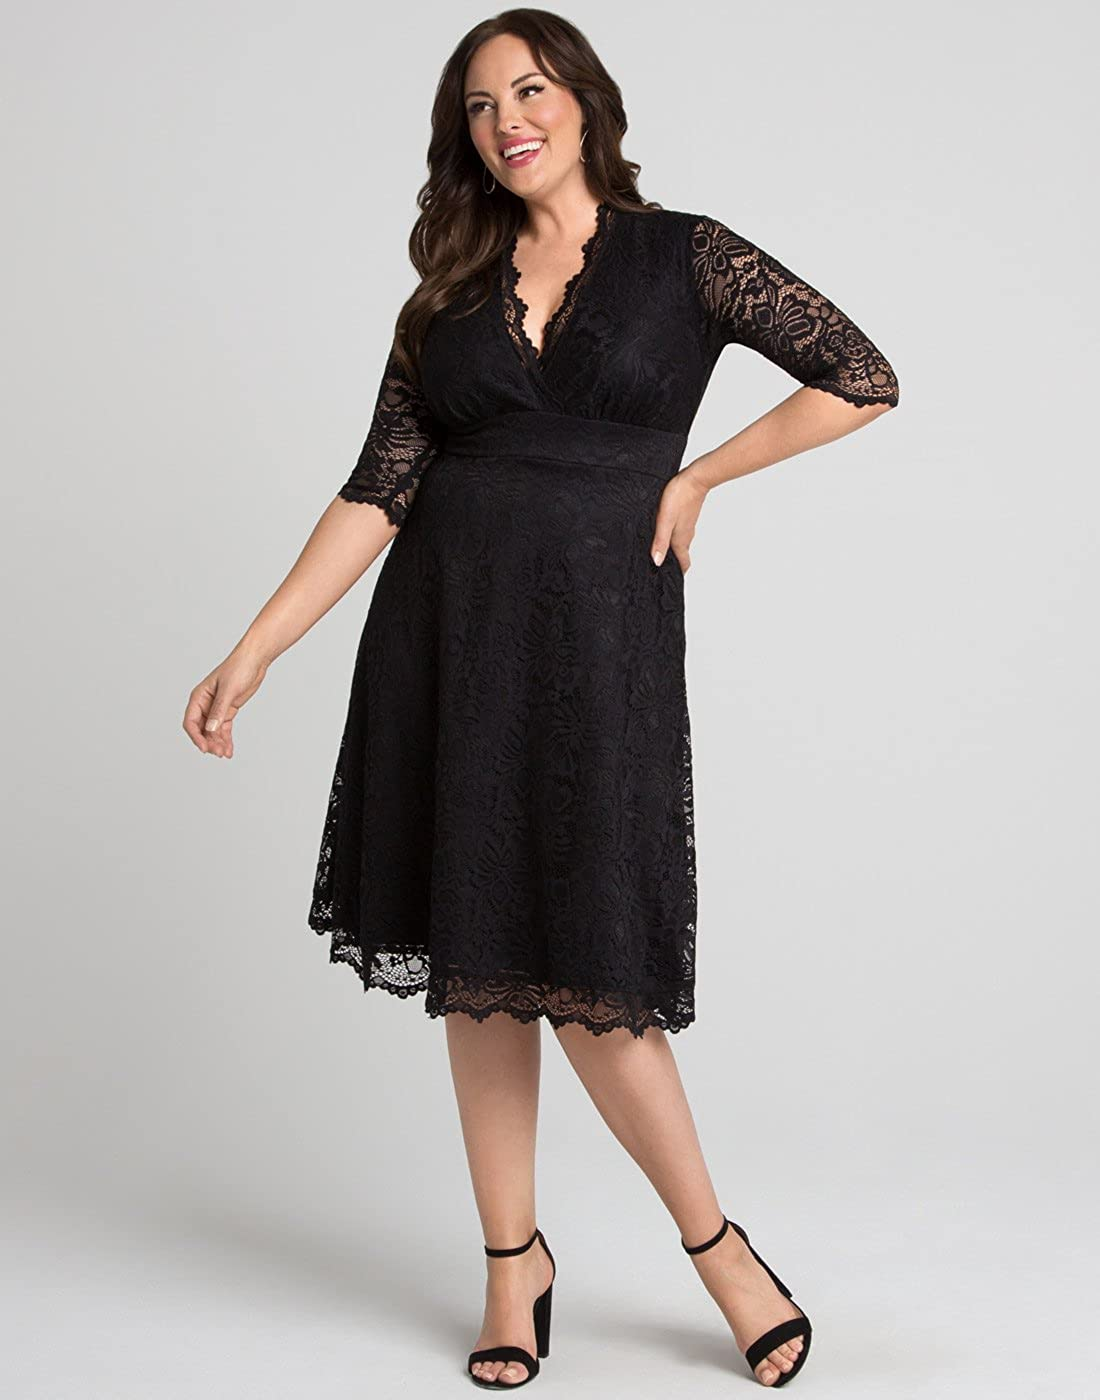 37ee2503b79 Amazon.com  Kiyonna Women s Mademoiselle Lace Dress  Clothing